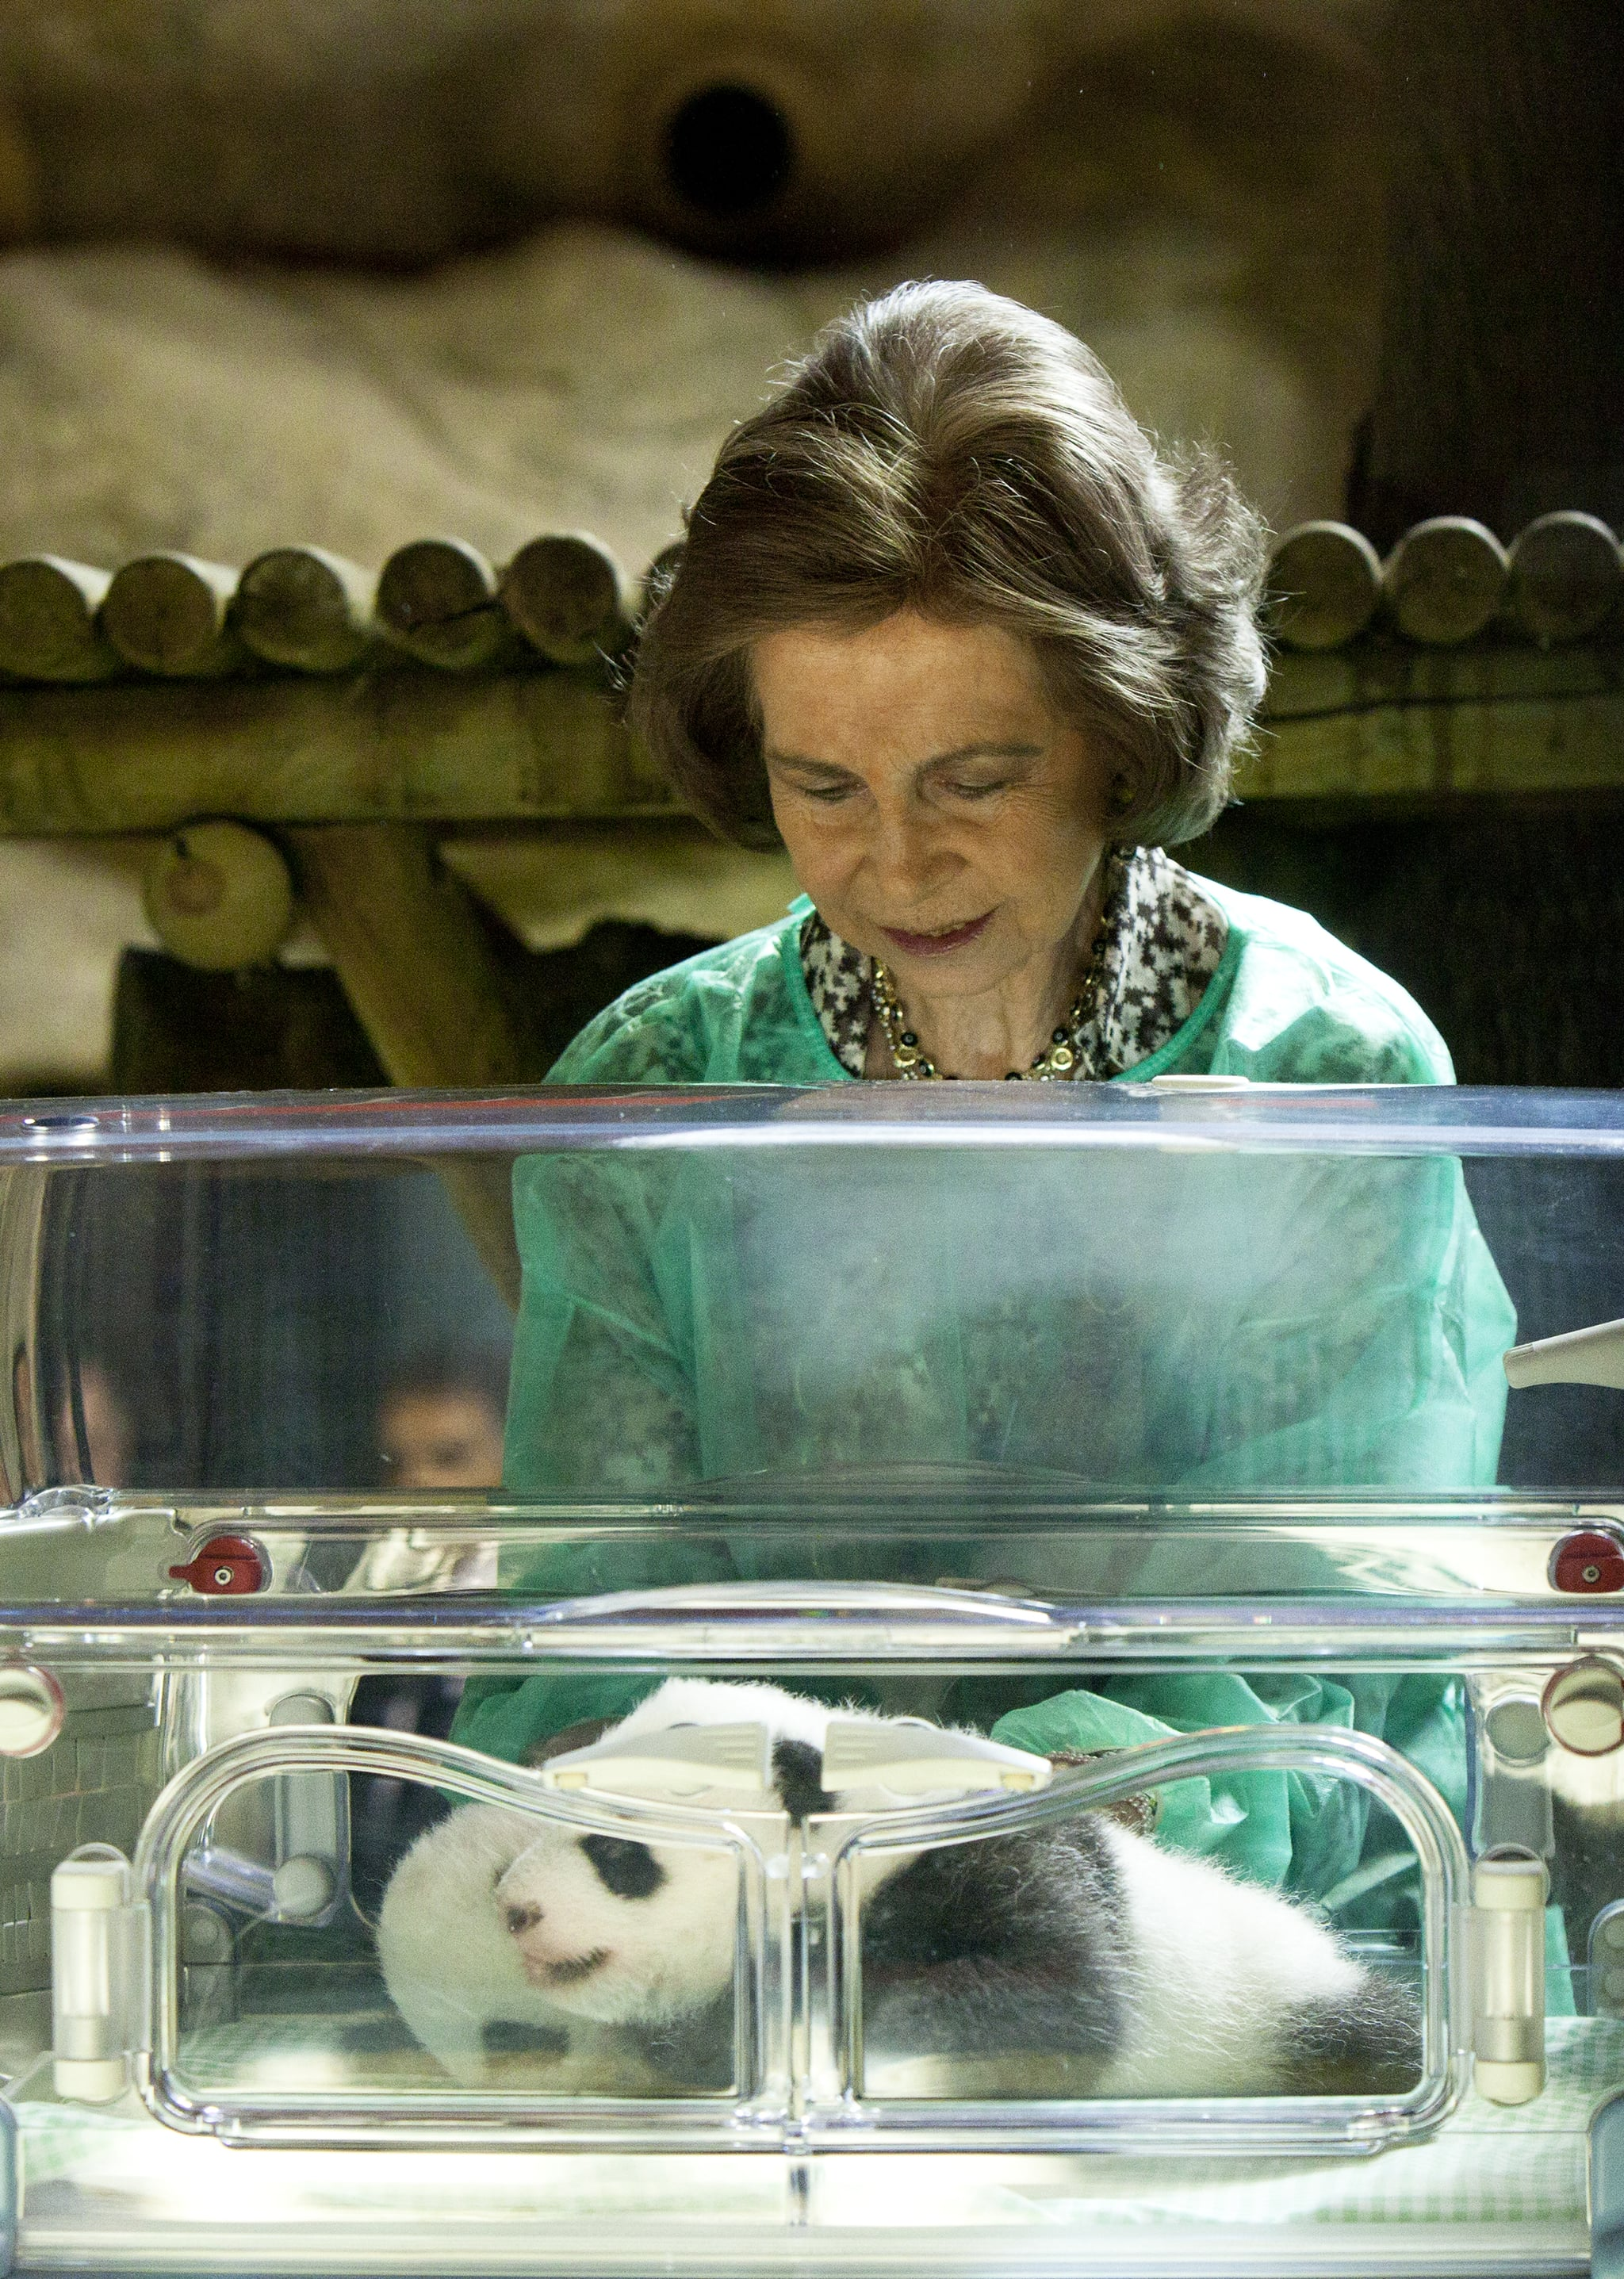 PopsugarLivingWild AnimalsPictures of Queen Sofia of Spain With Baby PandasMadrid's Panda Babies Have Furry Faces Fit For a QueenNovember 5, 2010 by Morgan Ashley Parker7 SharesChat with us on Facebook Messenger. Learn what's trending across POPSUGAR.Those camera-hogging pandas are at it again! From our first glance to that extra cute doctor checkup, the two yet-unnamed babes are Madrid's stars in the making. As a signal of their status, they've already held court for royalty! Queen Sofia of Spain stopped by to snuggle the little ones — while it's still safe to do so! — and it looks like this one is already telling her secrets . . . probably something bad about the other one hiding his face.See more of the royal meet and greet when you .Image Source: Getty Join the conversationChat with us on Facebook Messenger. Learn what's trending across POPSUGAR.Madrid Zoo And AquariumQueen SofiaGiant PandasWild AnimalsZoosSpainMadridScoopNewsFrom Our PartnersWant more?Get Your Daily Life HackSign up for our newslette - 웹